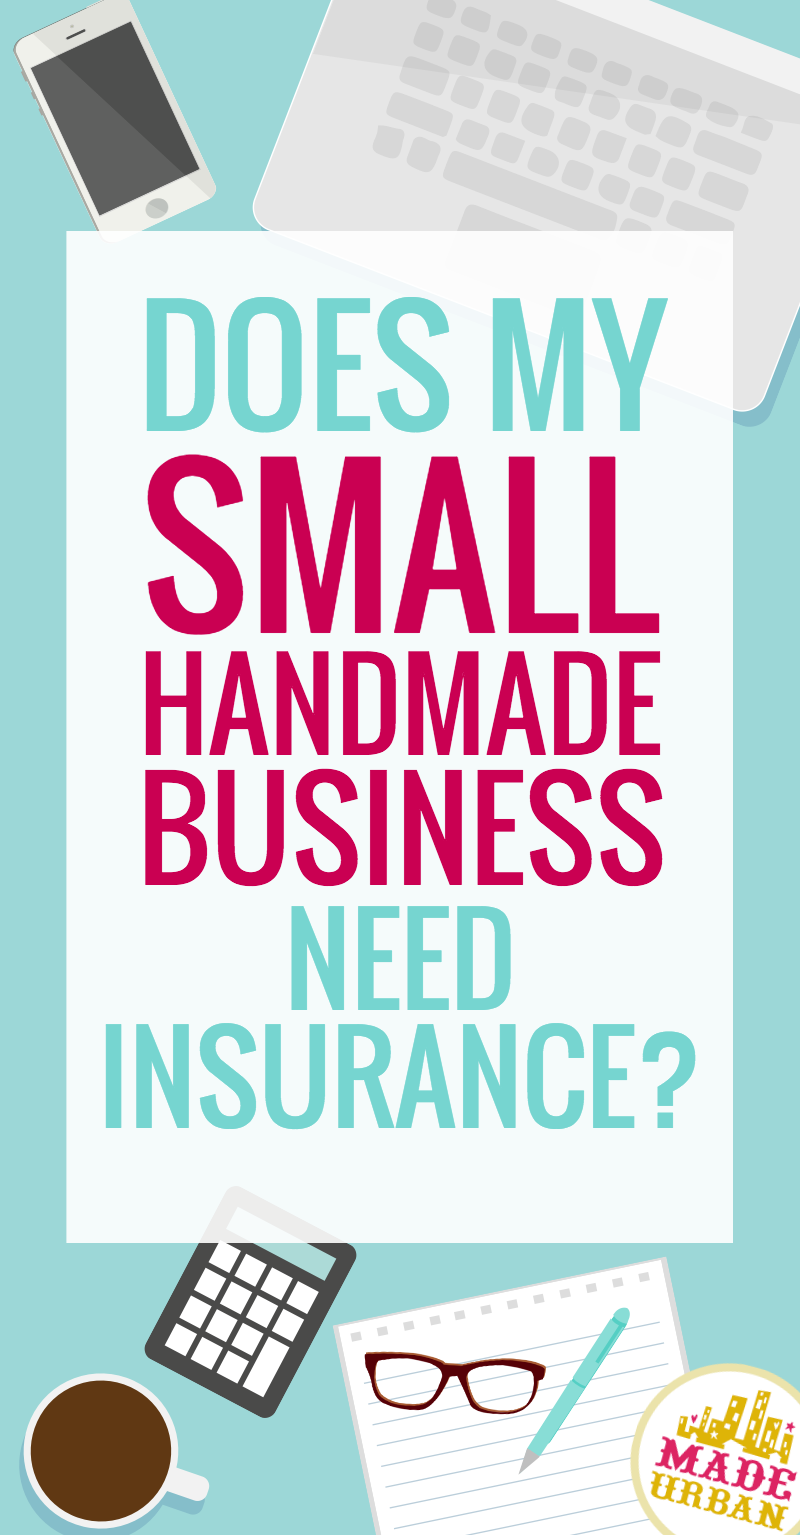 Does your Small Handmade Business Need Insurance